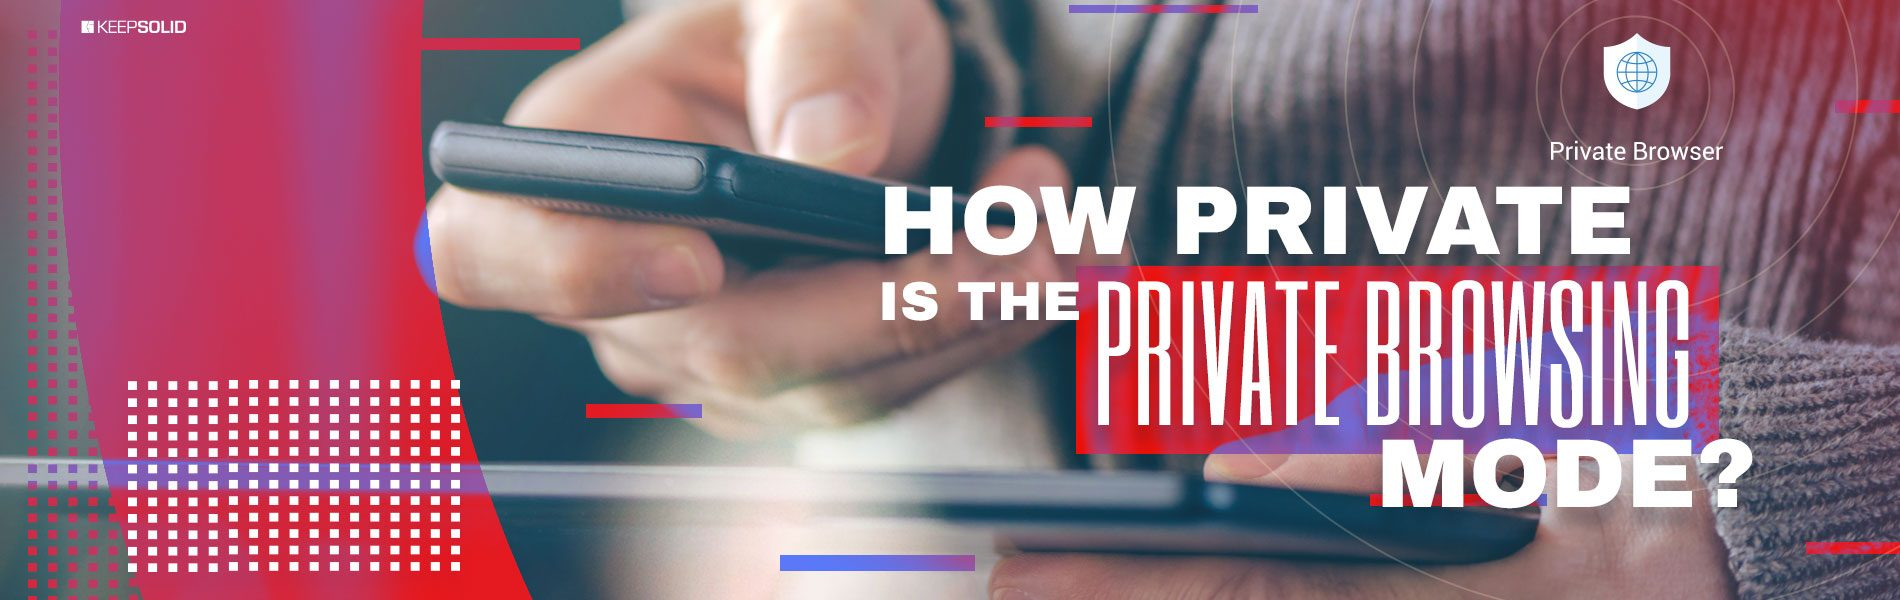 Man using phone, looking at screen while using private browsing mode